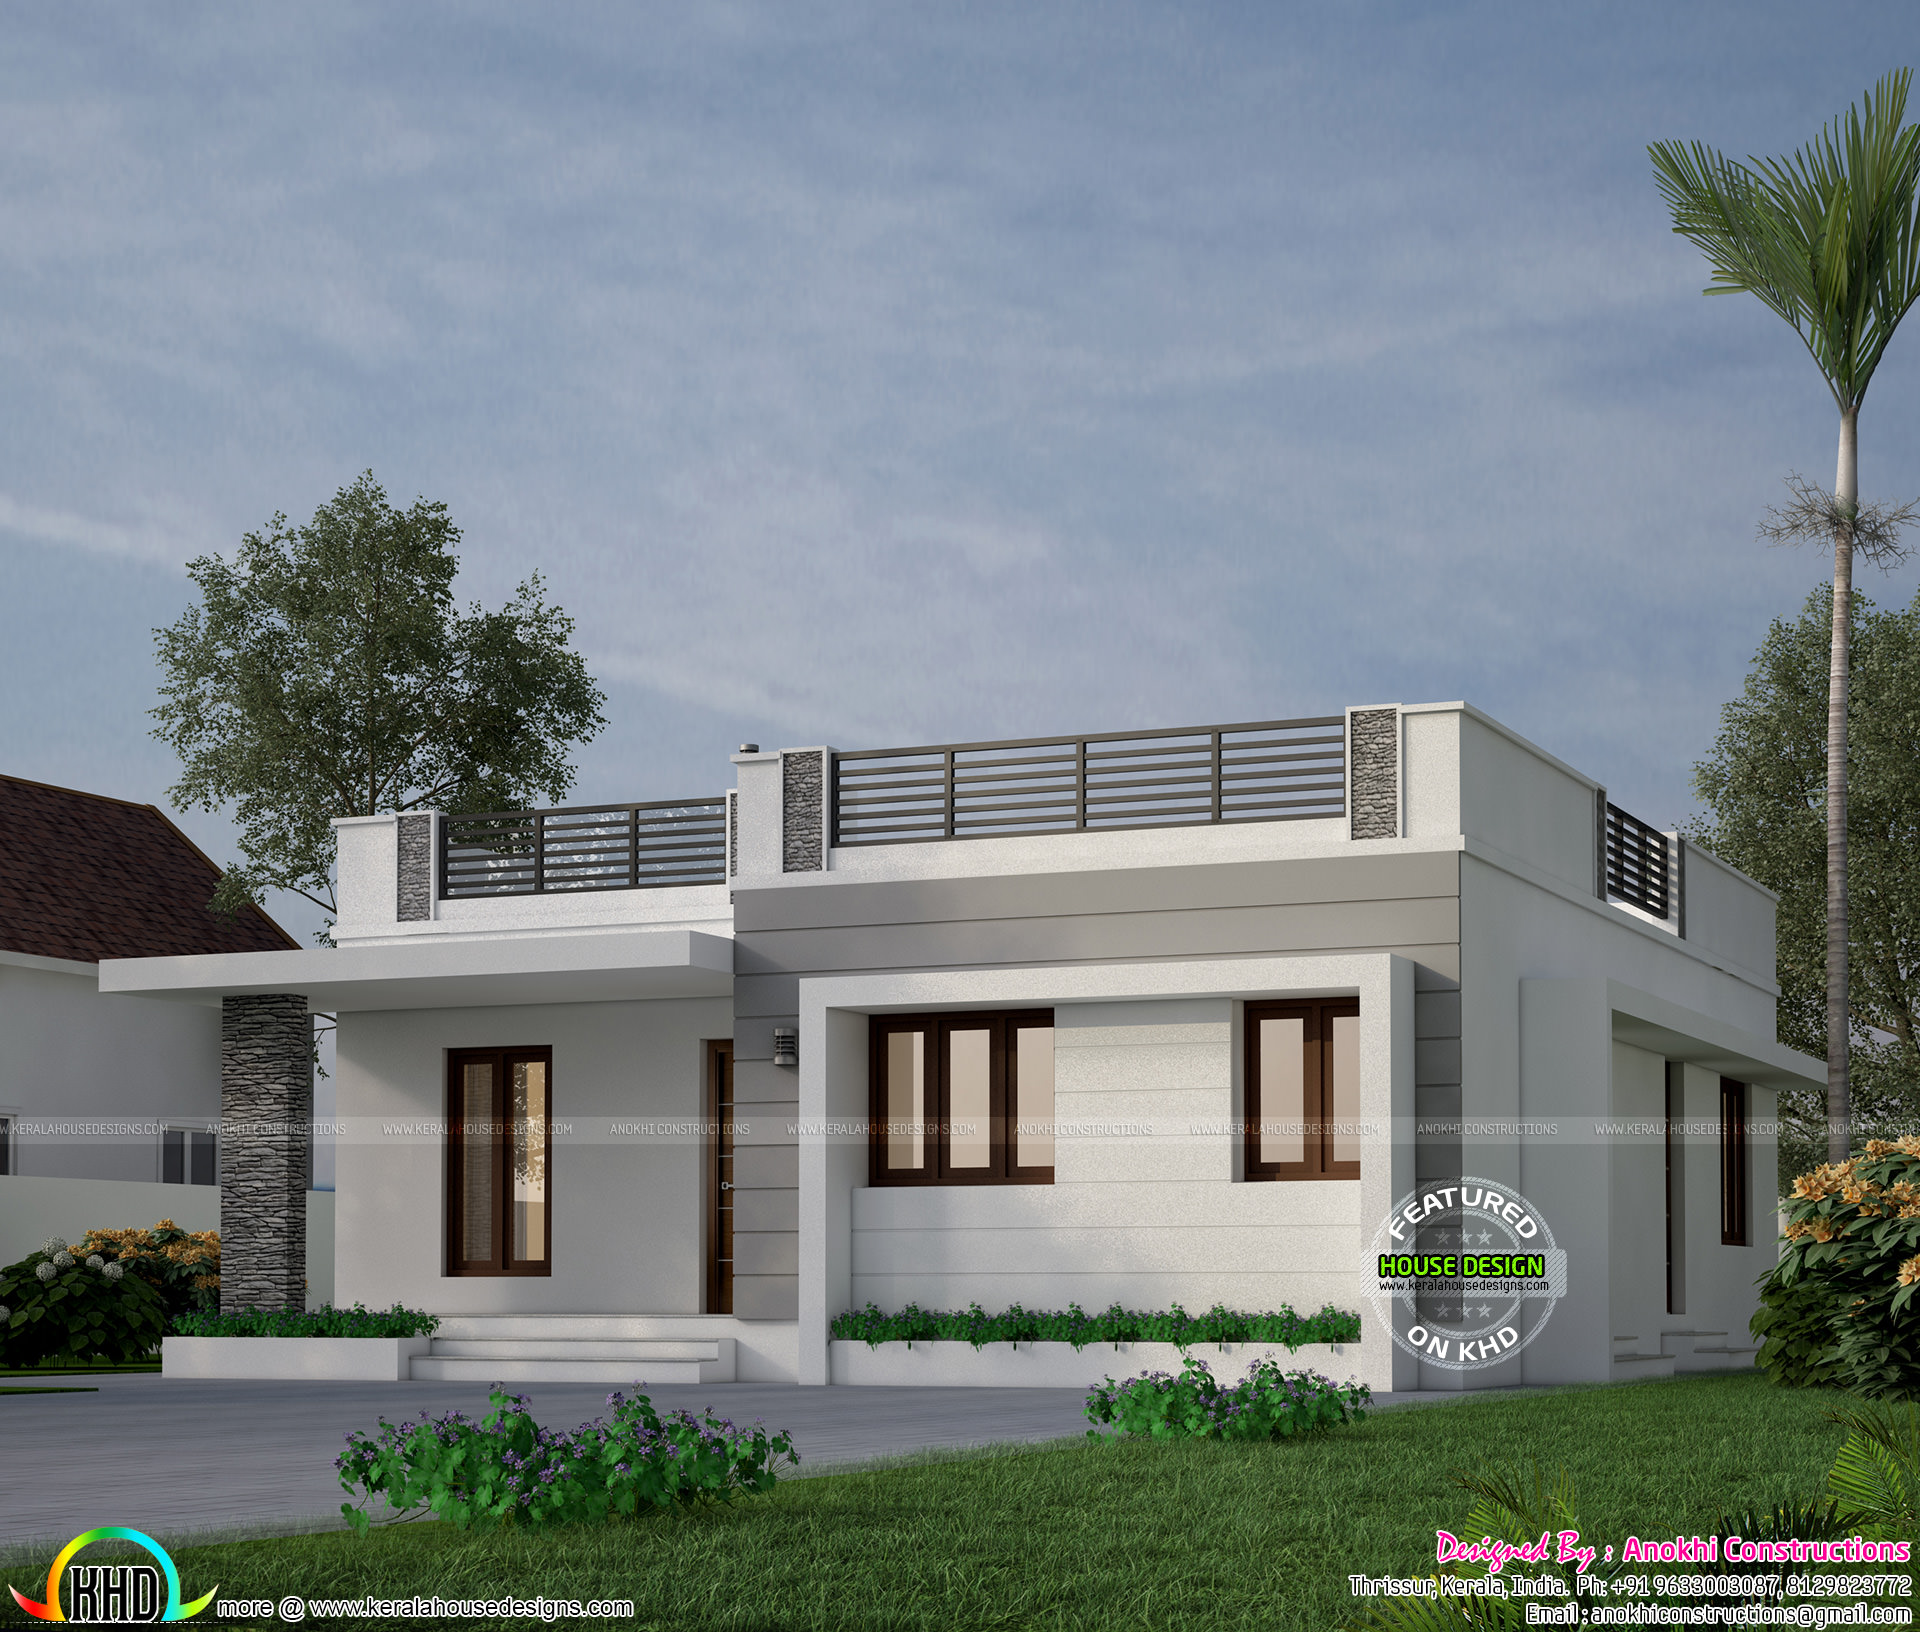 18 Lakhs Budget Estimated House In Kerala